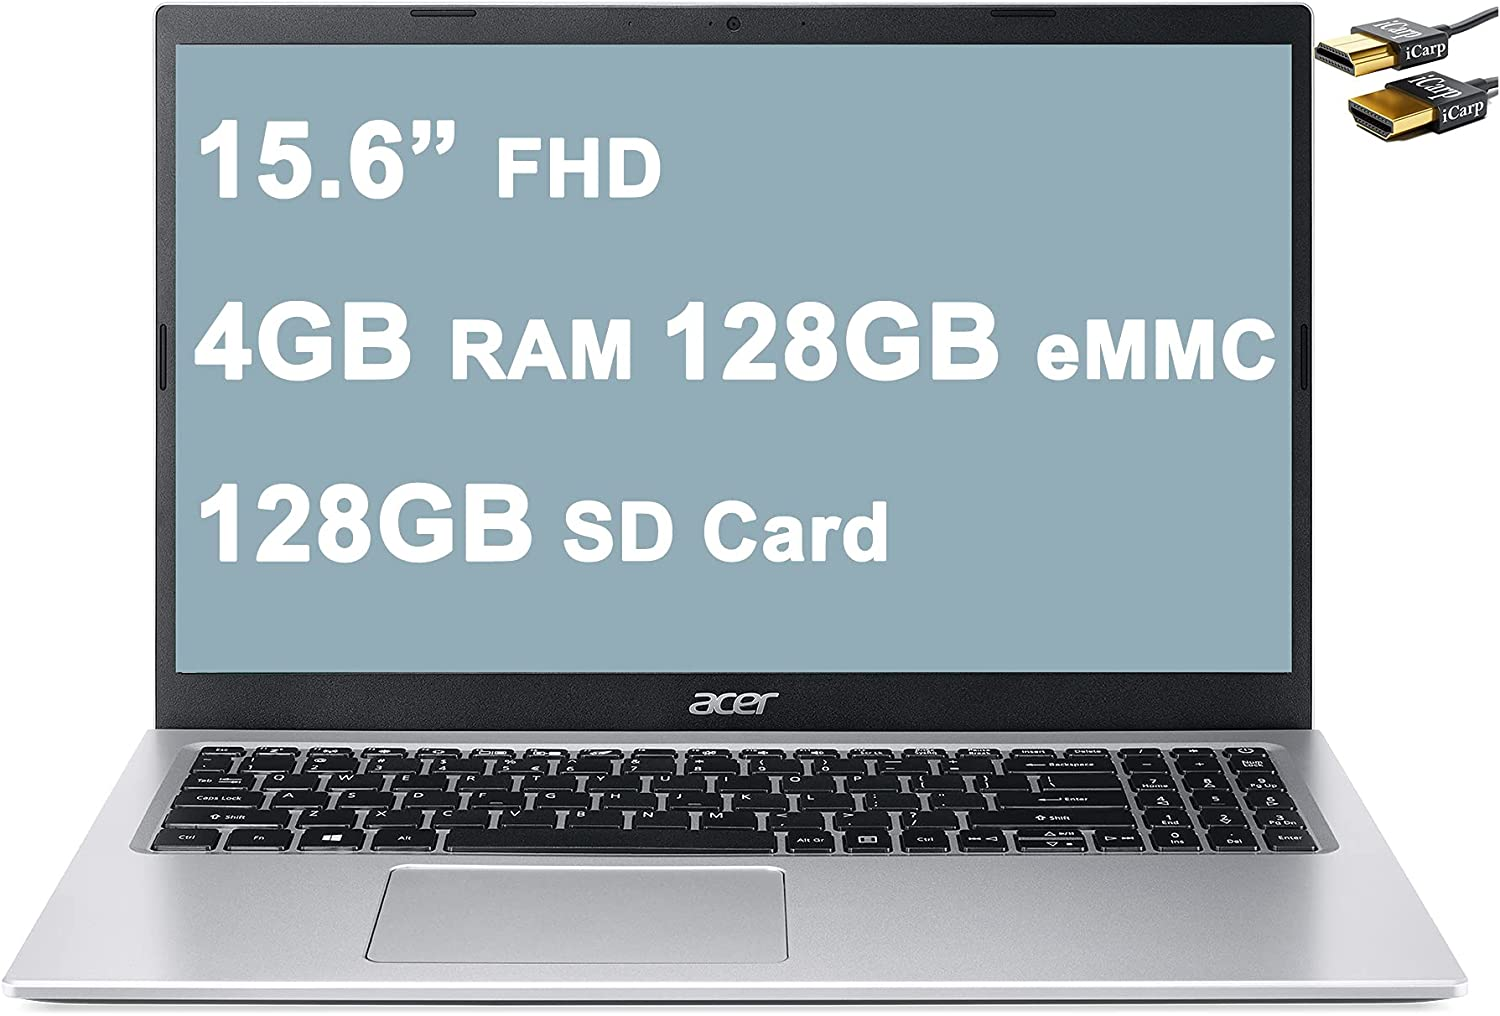 """Flagship 2021 Acer Aspire 1 Business 15 Laptop 15.6"""" FHD ComfyView Display Intel Celeron N4500 Processor 4GB RAM 128GB eMMC + 128GB SD Card Intel UHD Graphic Win10 Silver + iCarp HDMI Cable"""